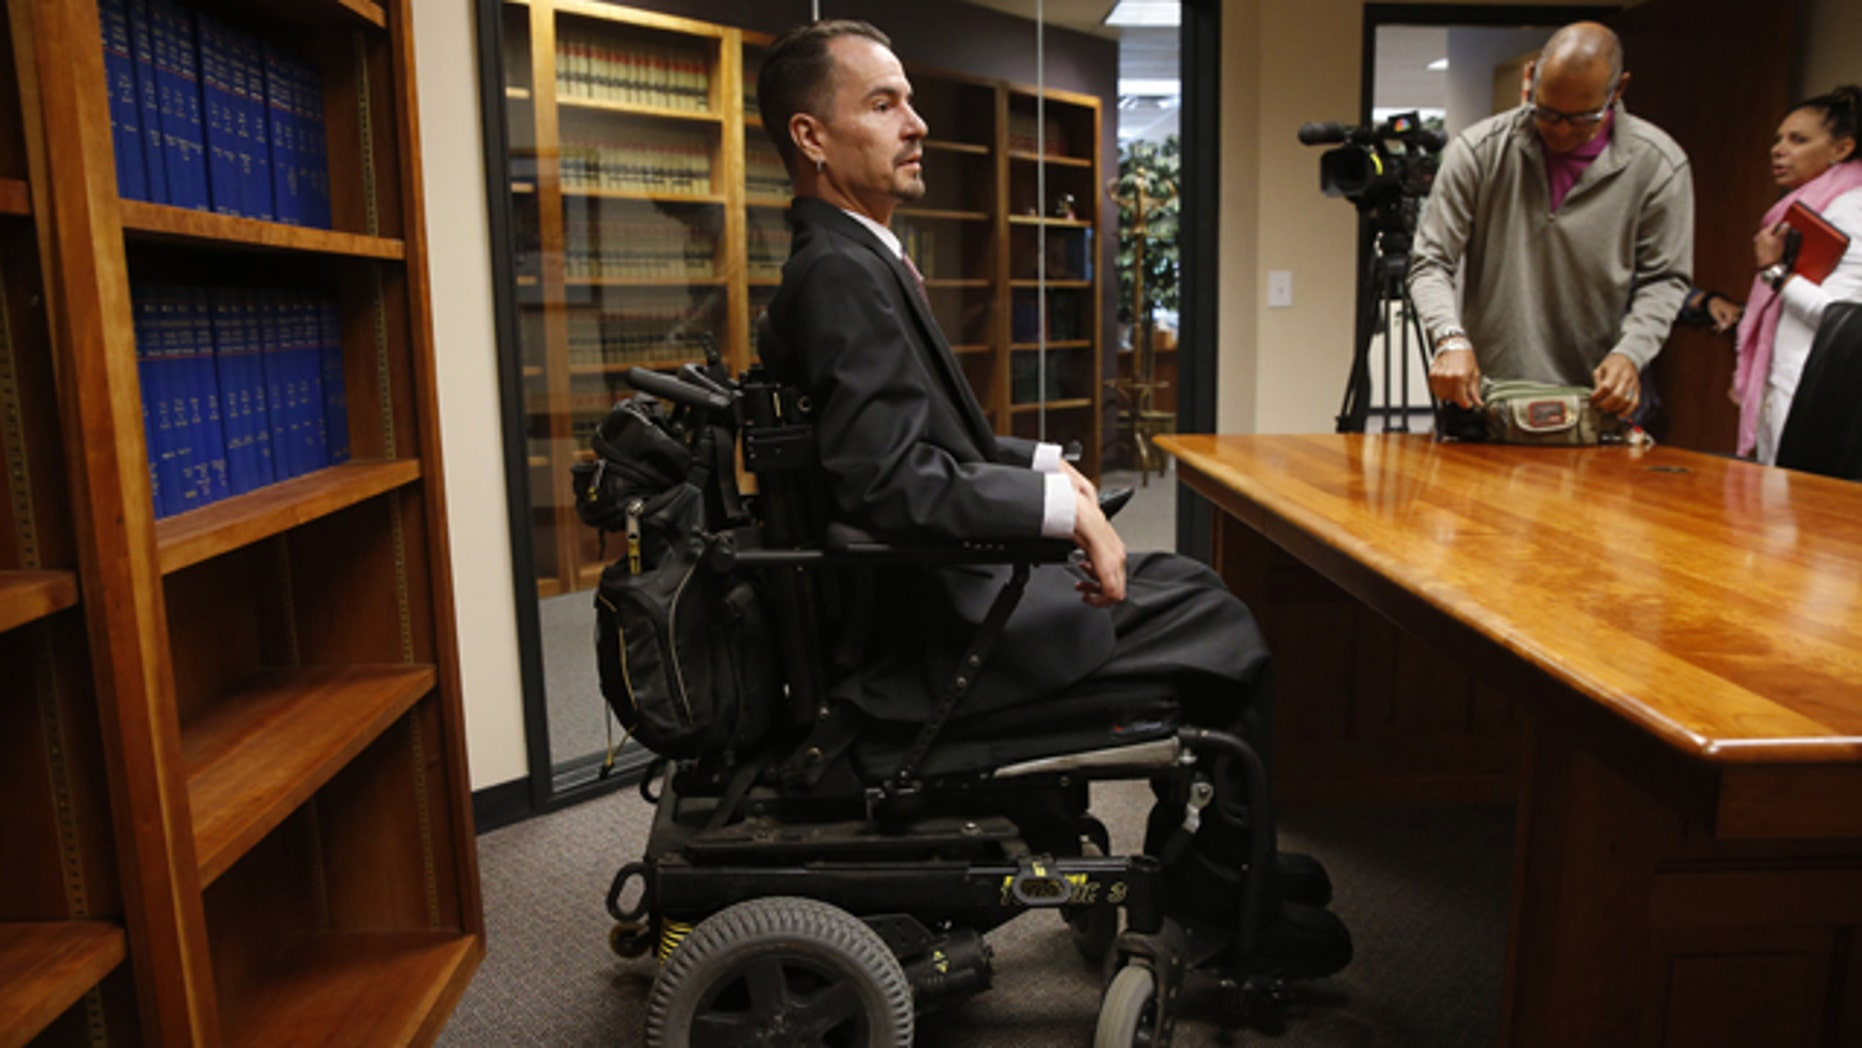 June 15, 2015: Brandon Coats prepares to take questions from members of the media after the Colorado Supreme Court ruled against him, at his attorney's offices in Centennial, Colo. (AP Photo/Brennan Linsley)